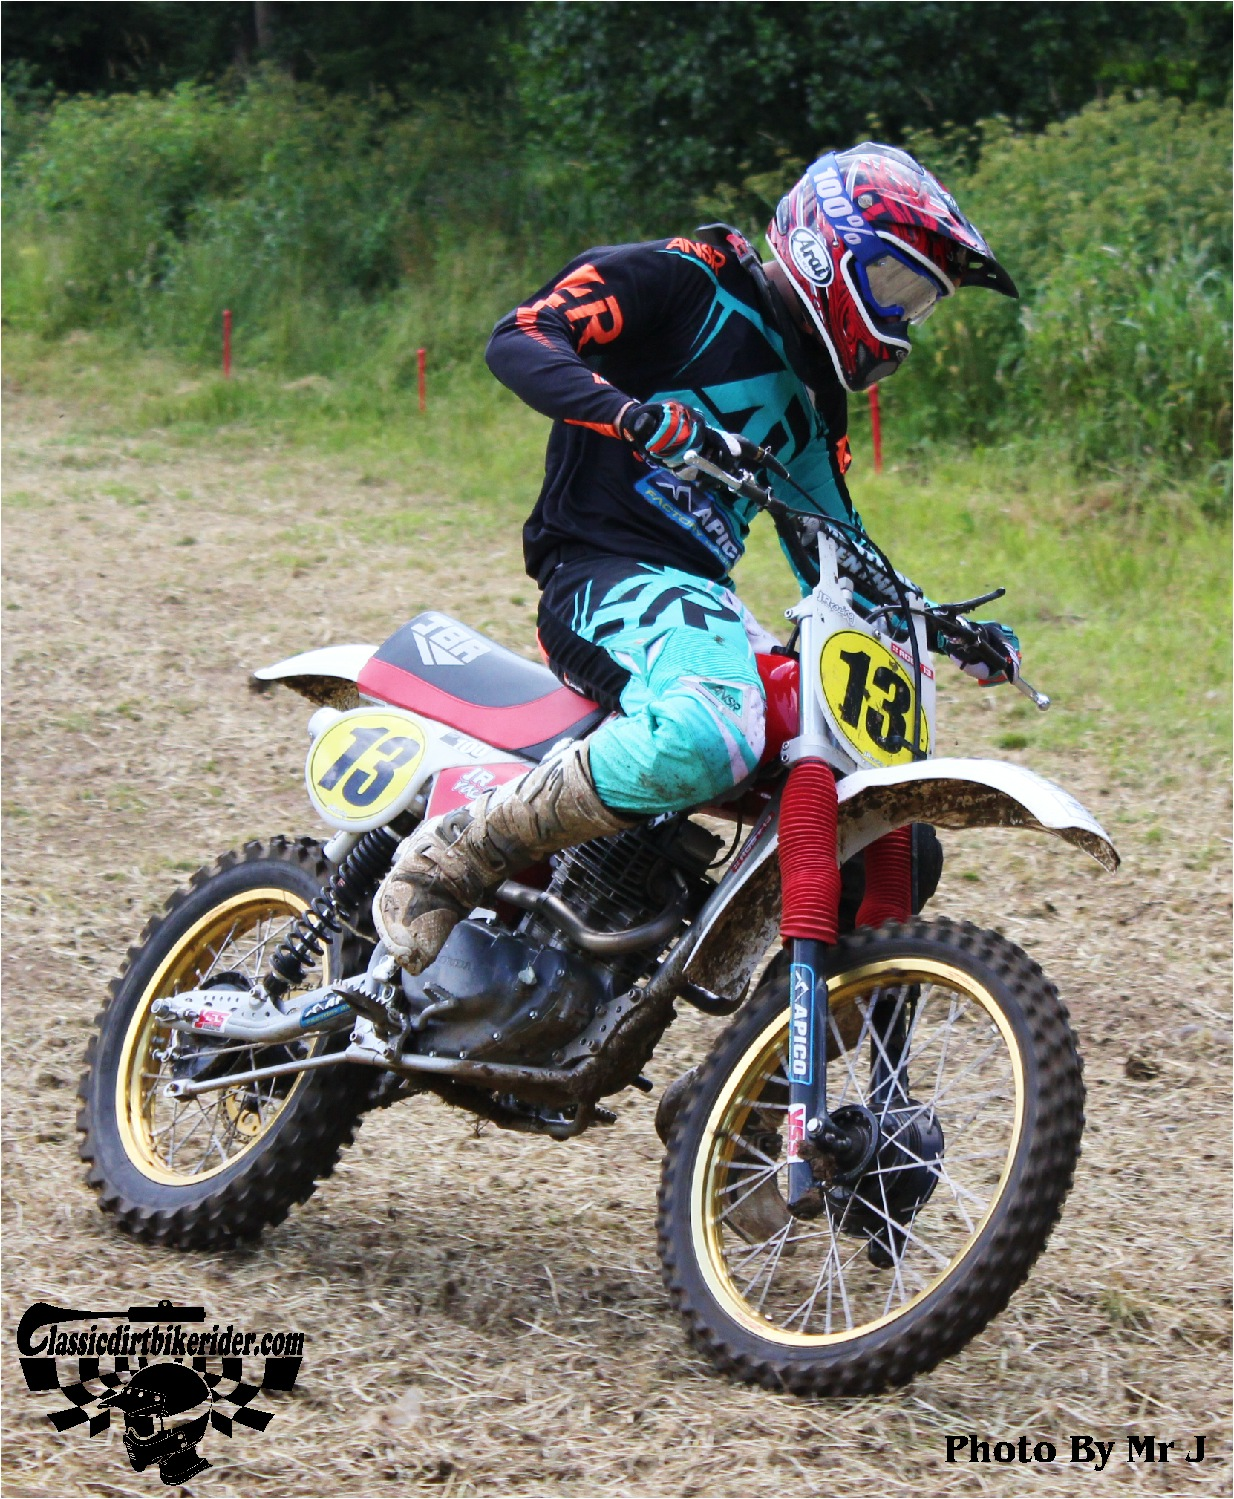 king of the castle 2015 photos Farleigh Castle twinshock motocross classicdirtbikerider.com 37